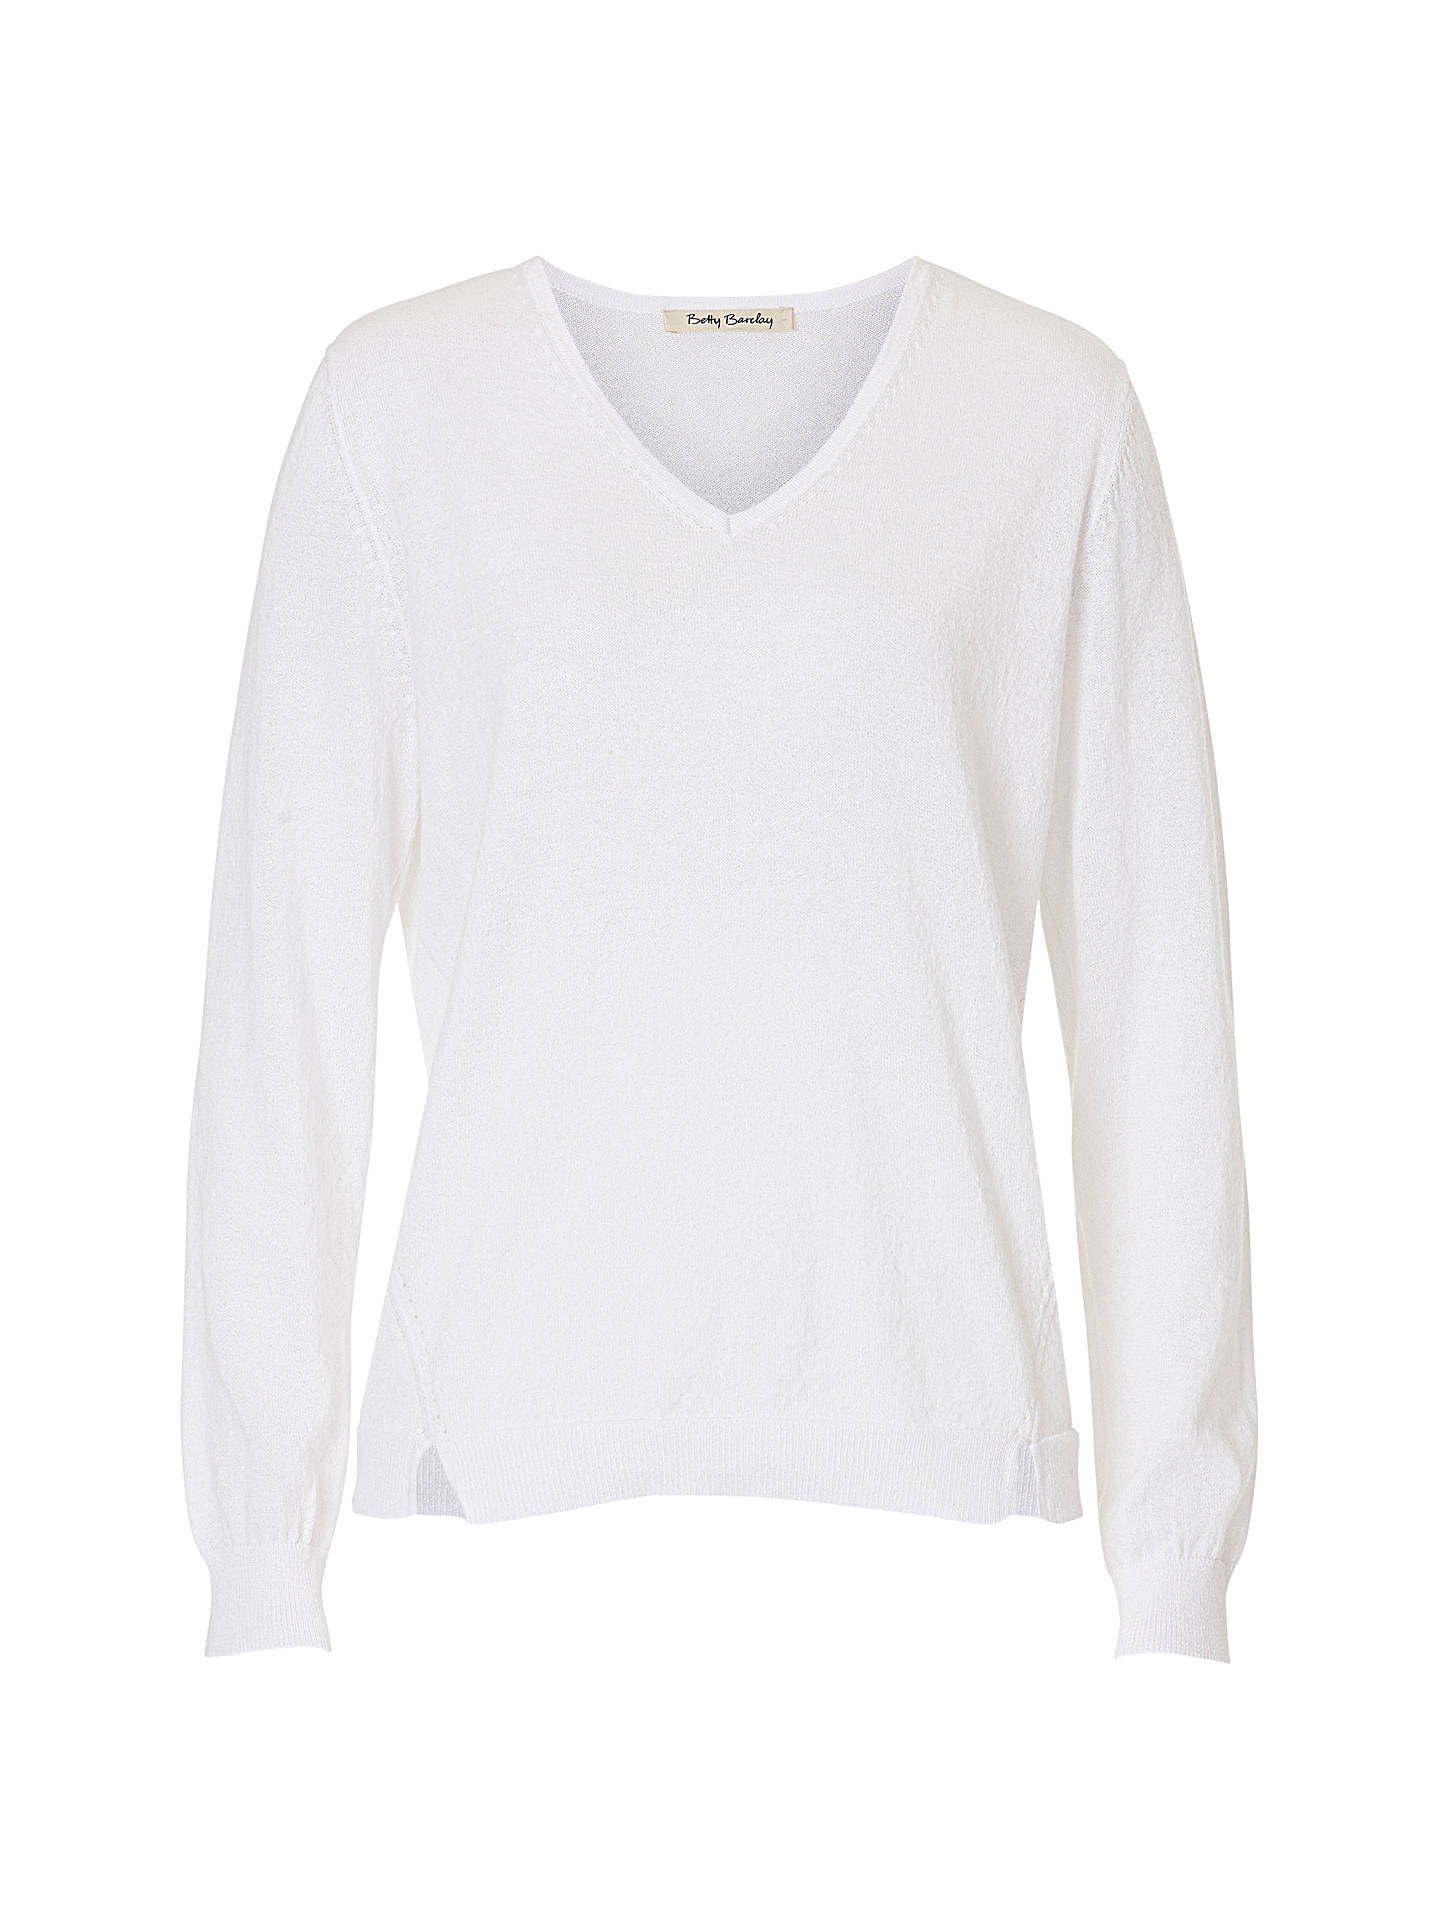 BuyBetty Barclay Fine Knit Embellished Jumper, Bright White, 10 Online at johnlewis.com